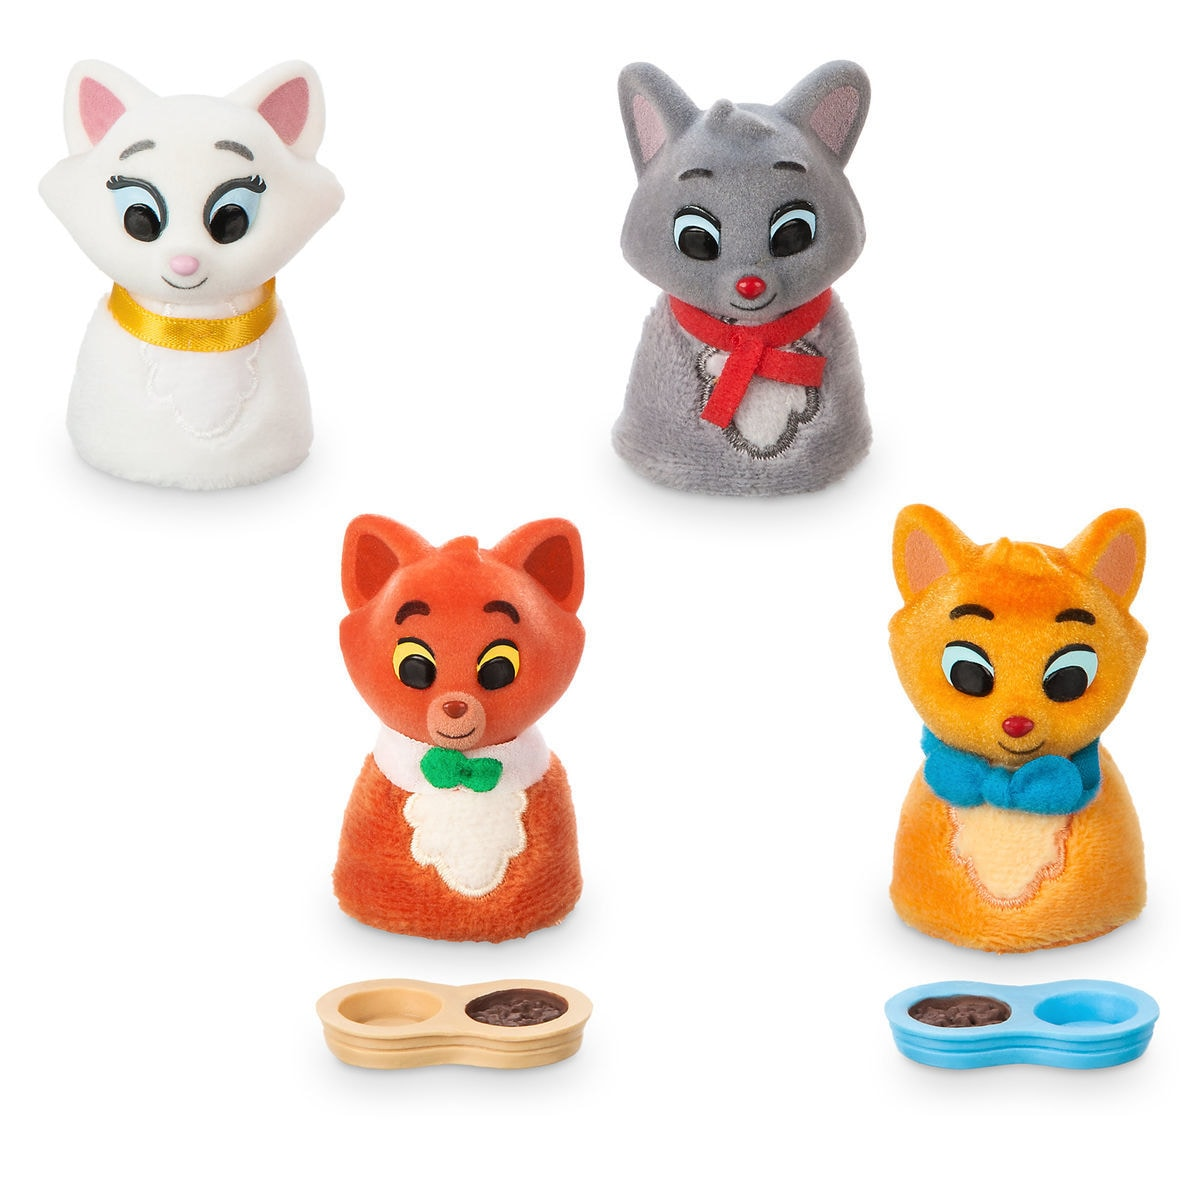 Aristocats Family Pack Playset Disney Furrytale Friends Shopdisney